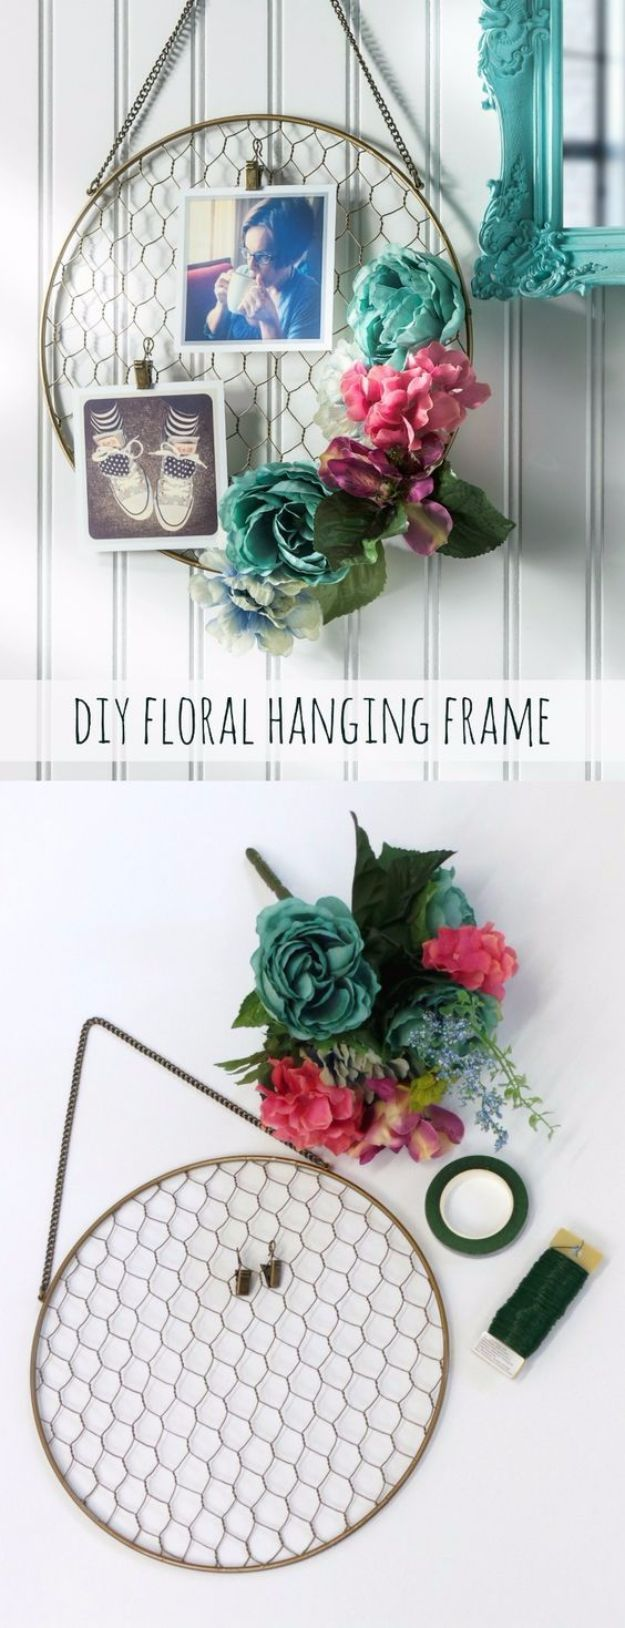 Best DIY Ideas With Chicken Wire - Pretty DIY Floral Hanging Frame - Rustic Farmhouse Decor Tutorials With Chickenwire and Easy Vintage Shabby Chic Home Decor for Kitchen, Living Room and Bathroom - Creative Country Crafts, Furniture, Patio Decor and Rustic Wall Art and Accessories to Make and Sell http://diyjoy.com/diy-projects-chicken-wire